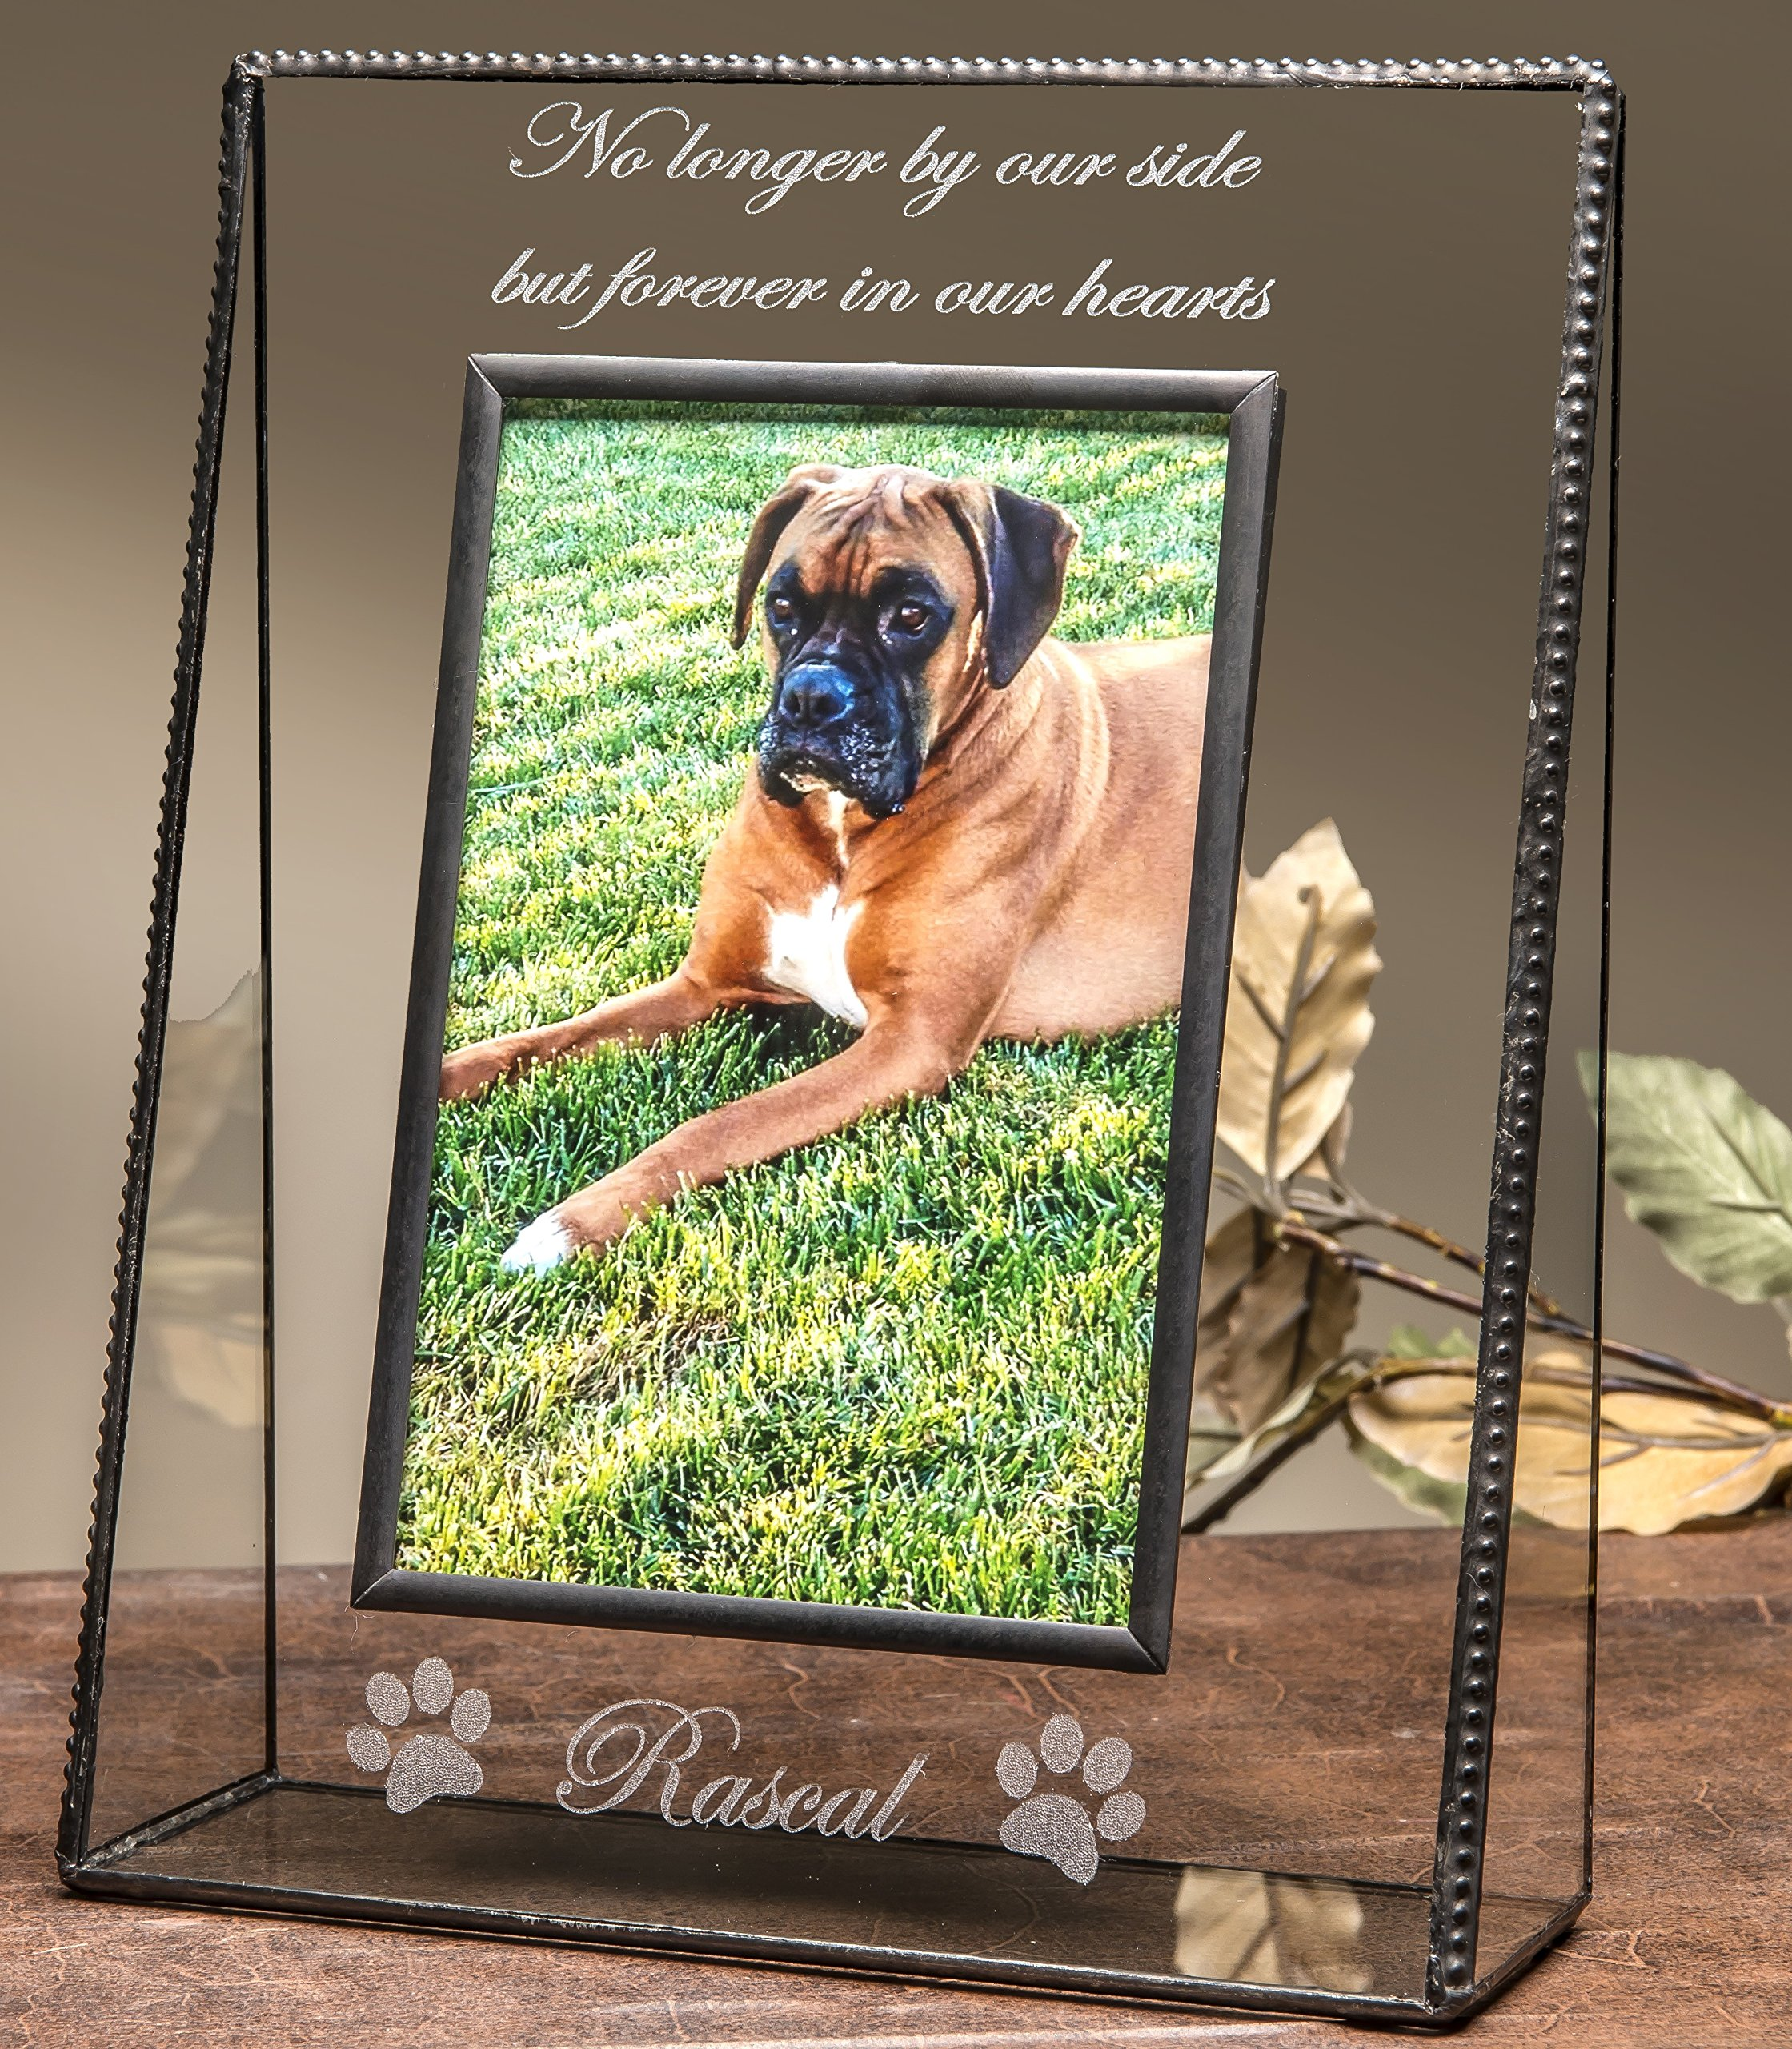 J Devlin Pic 319-46VEP534 Personalized Memorial Pet Glass Picture Frame Engraved 4x6 Photo Frame Dog Cat